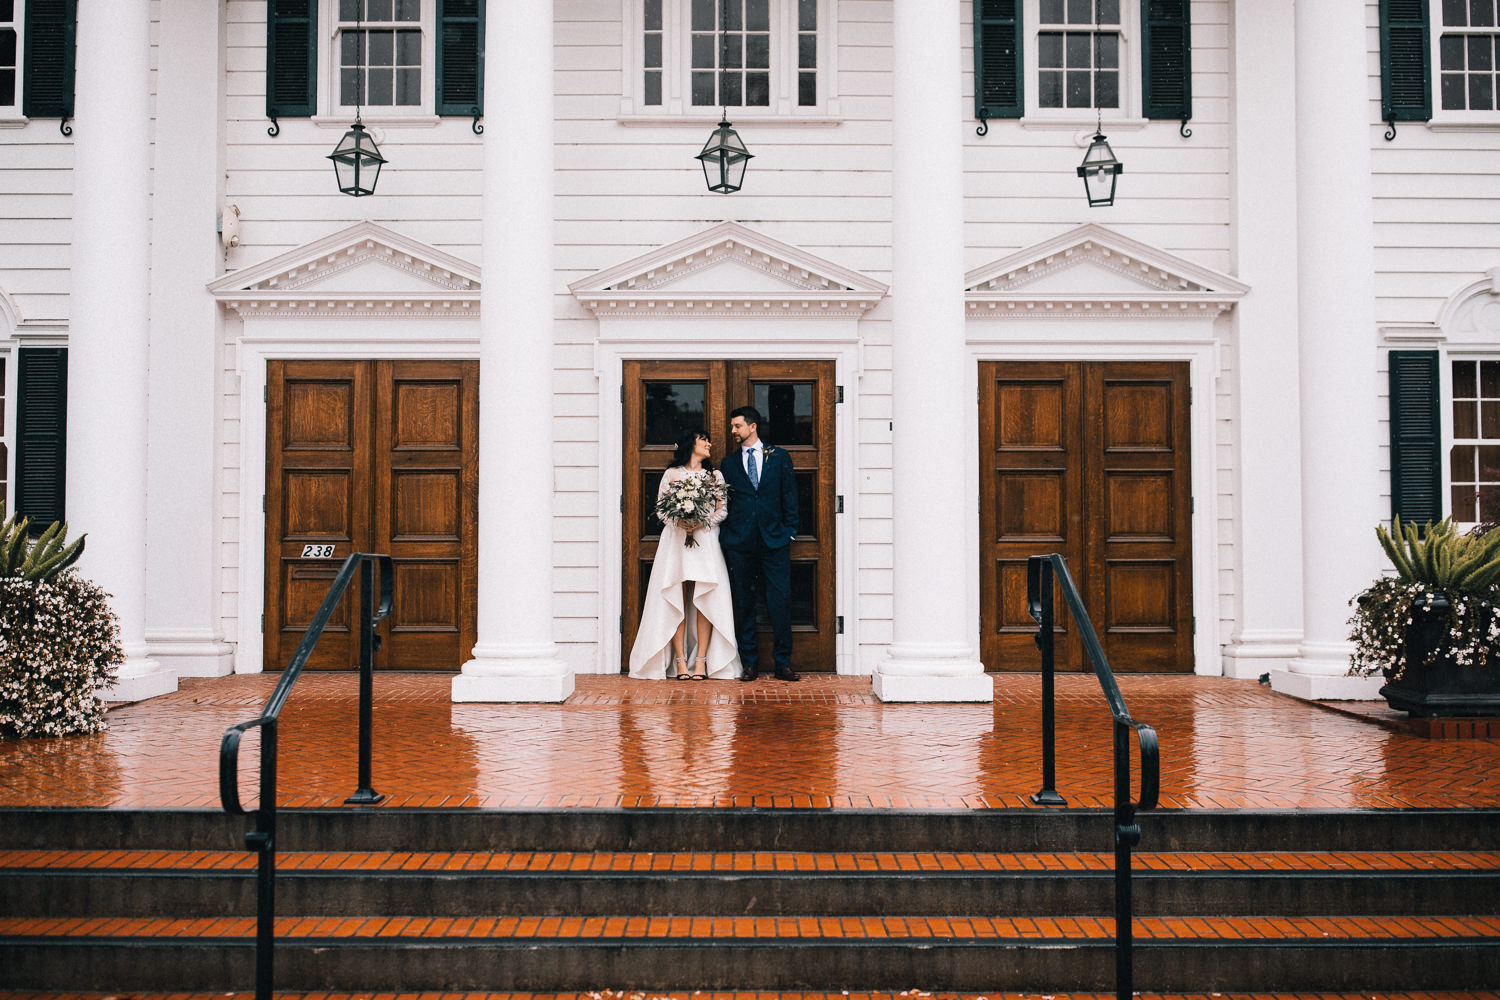 2019_05_ 182019.05.19 Lisa + Eddie South Bay Wedding Blog Photos Edited For Web 0087.jpg